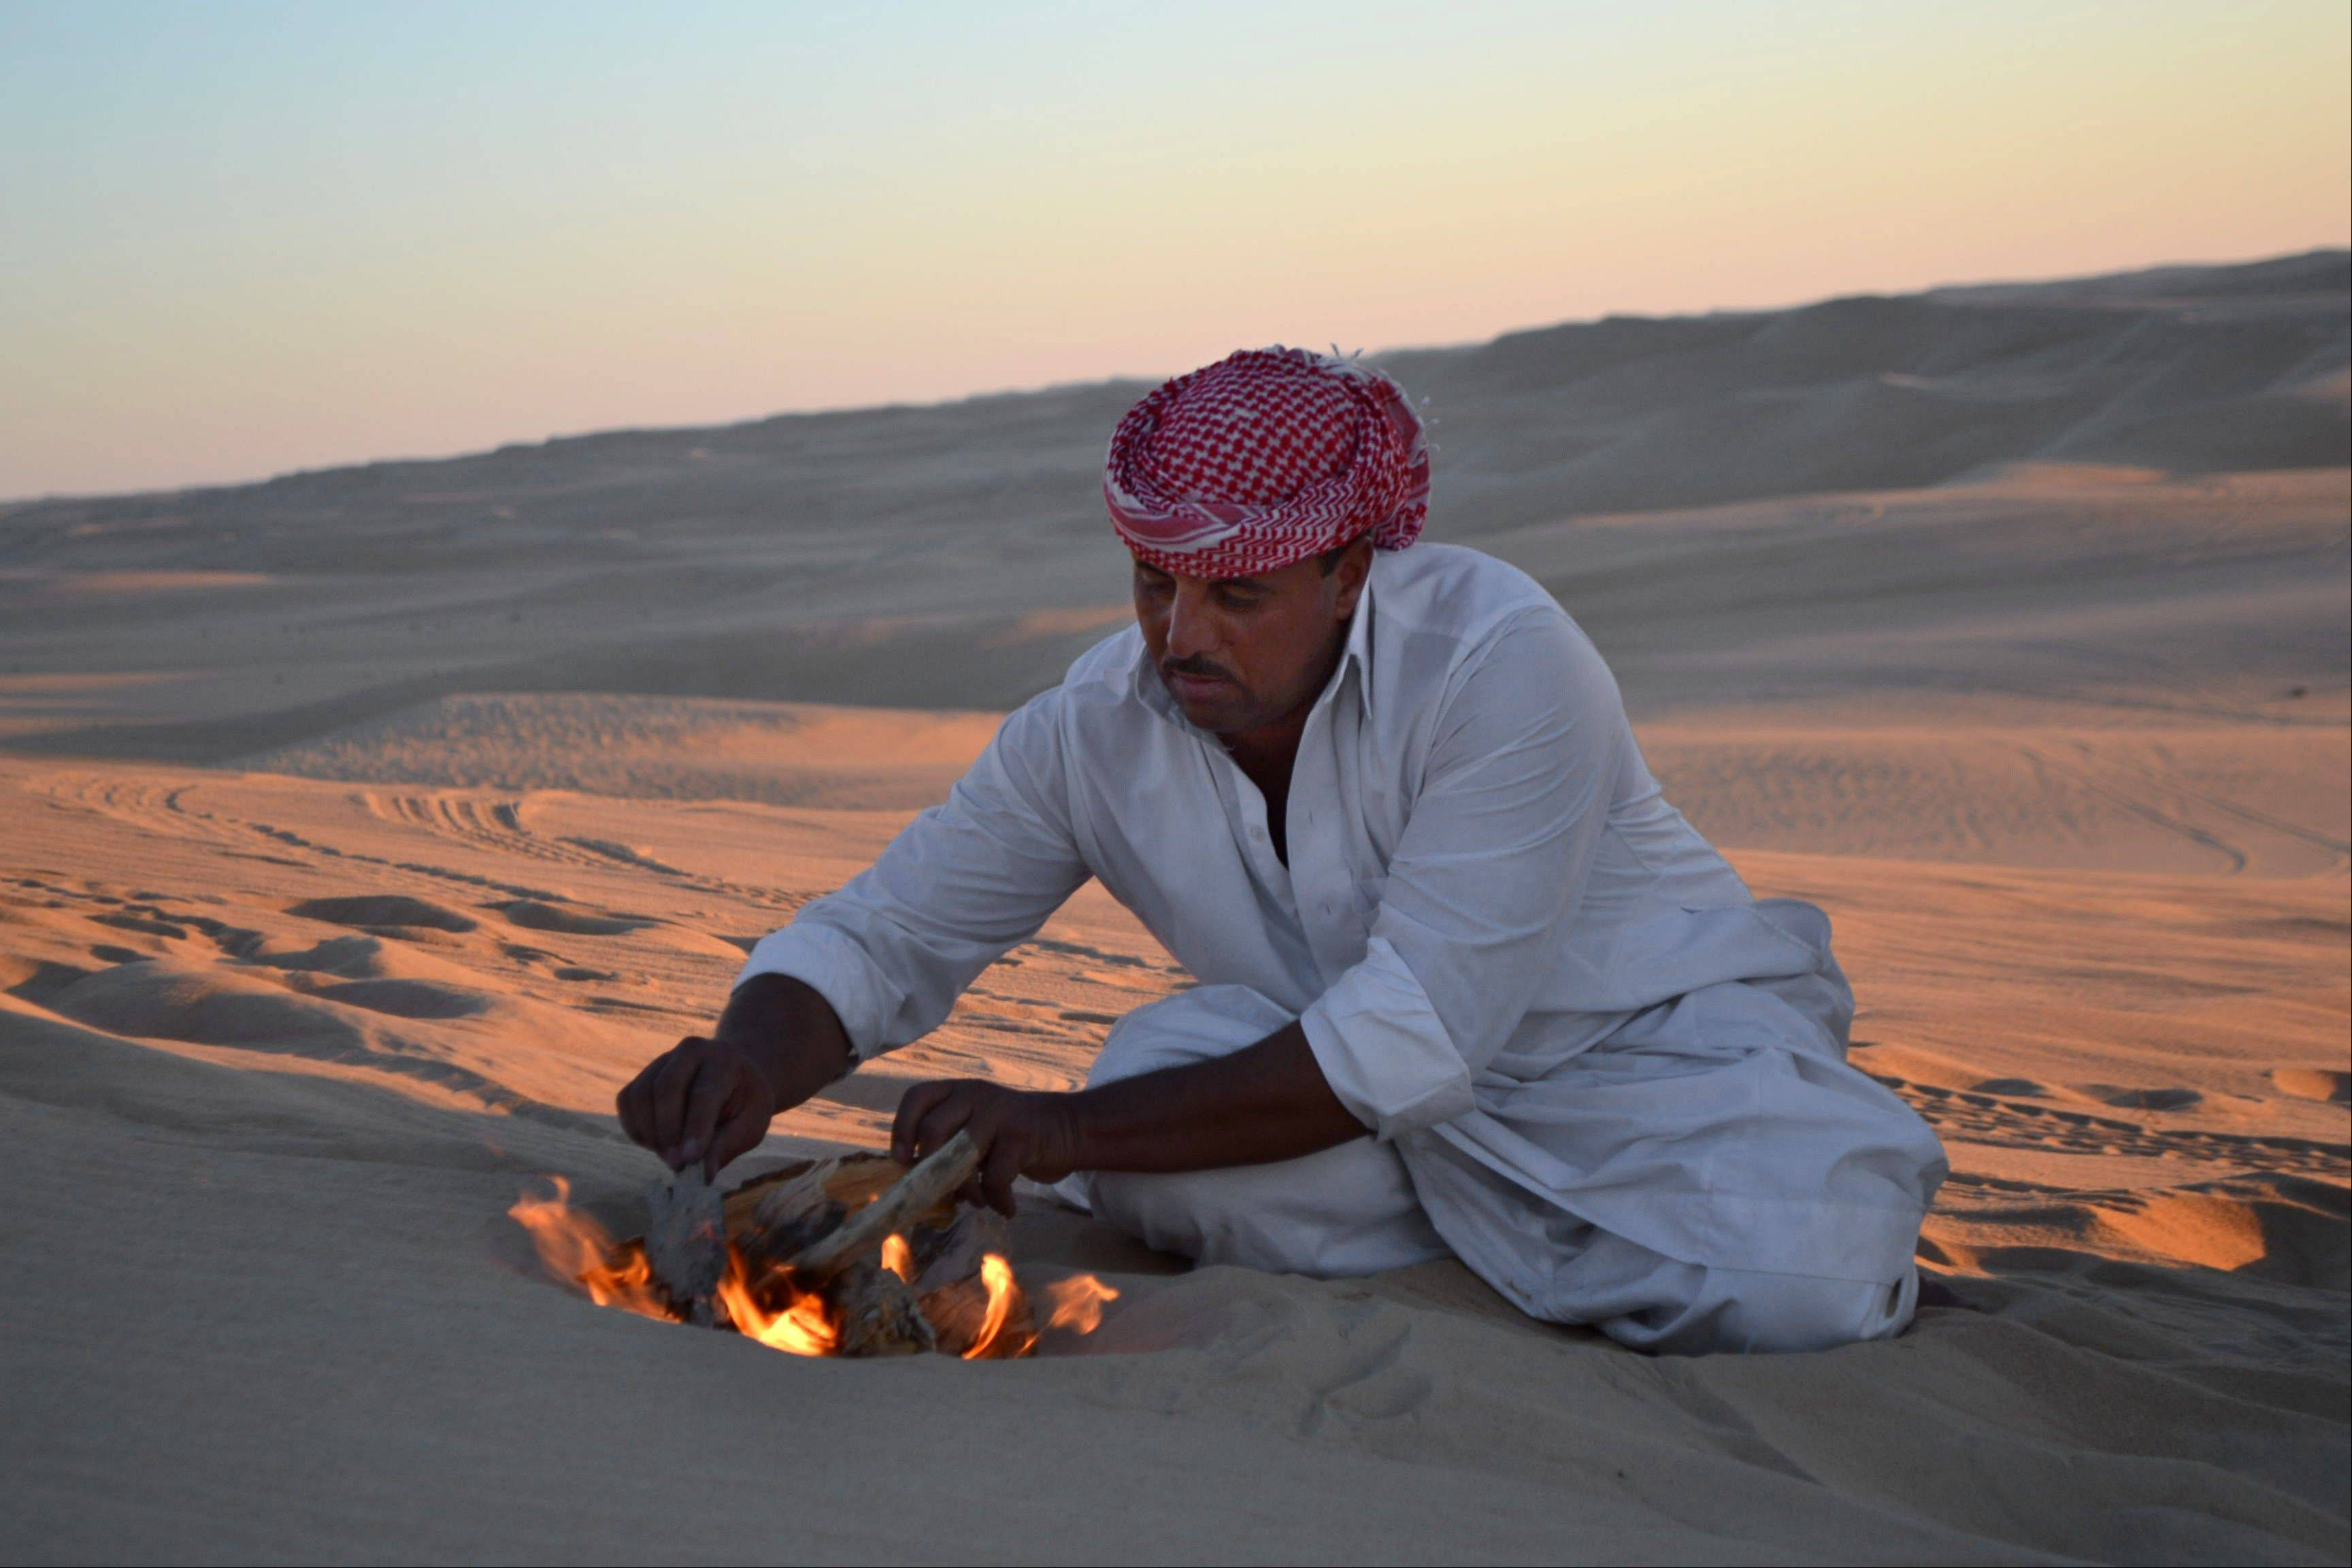 Desert safari driver Ahmed Bakrin builds a small bonfire to make mint tea before sunset during a trek through the Great Sand Sea outside the Egyptian oasis of Siwa.